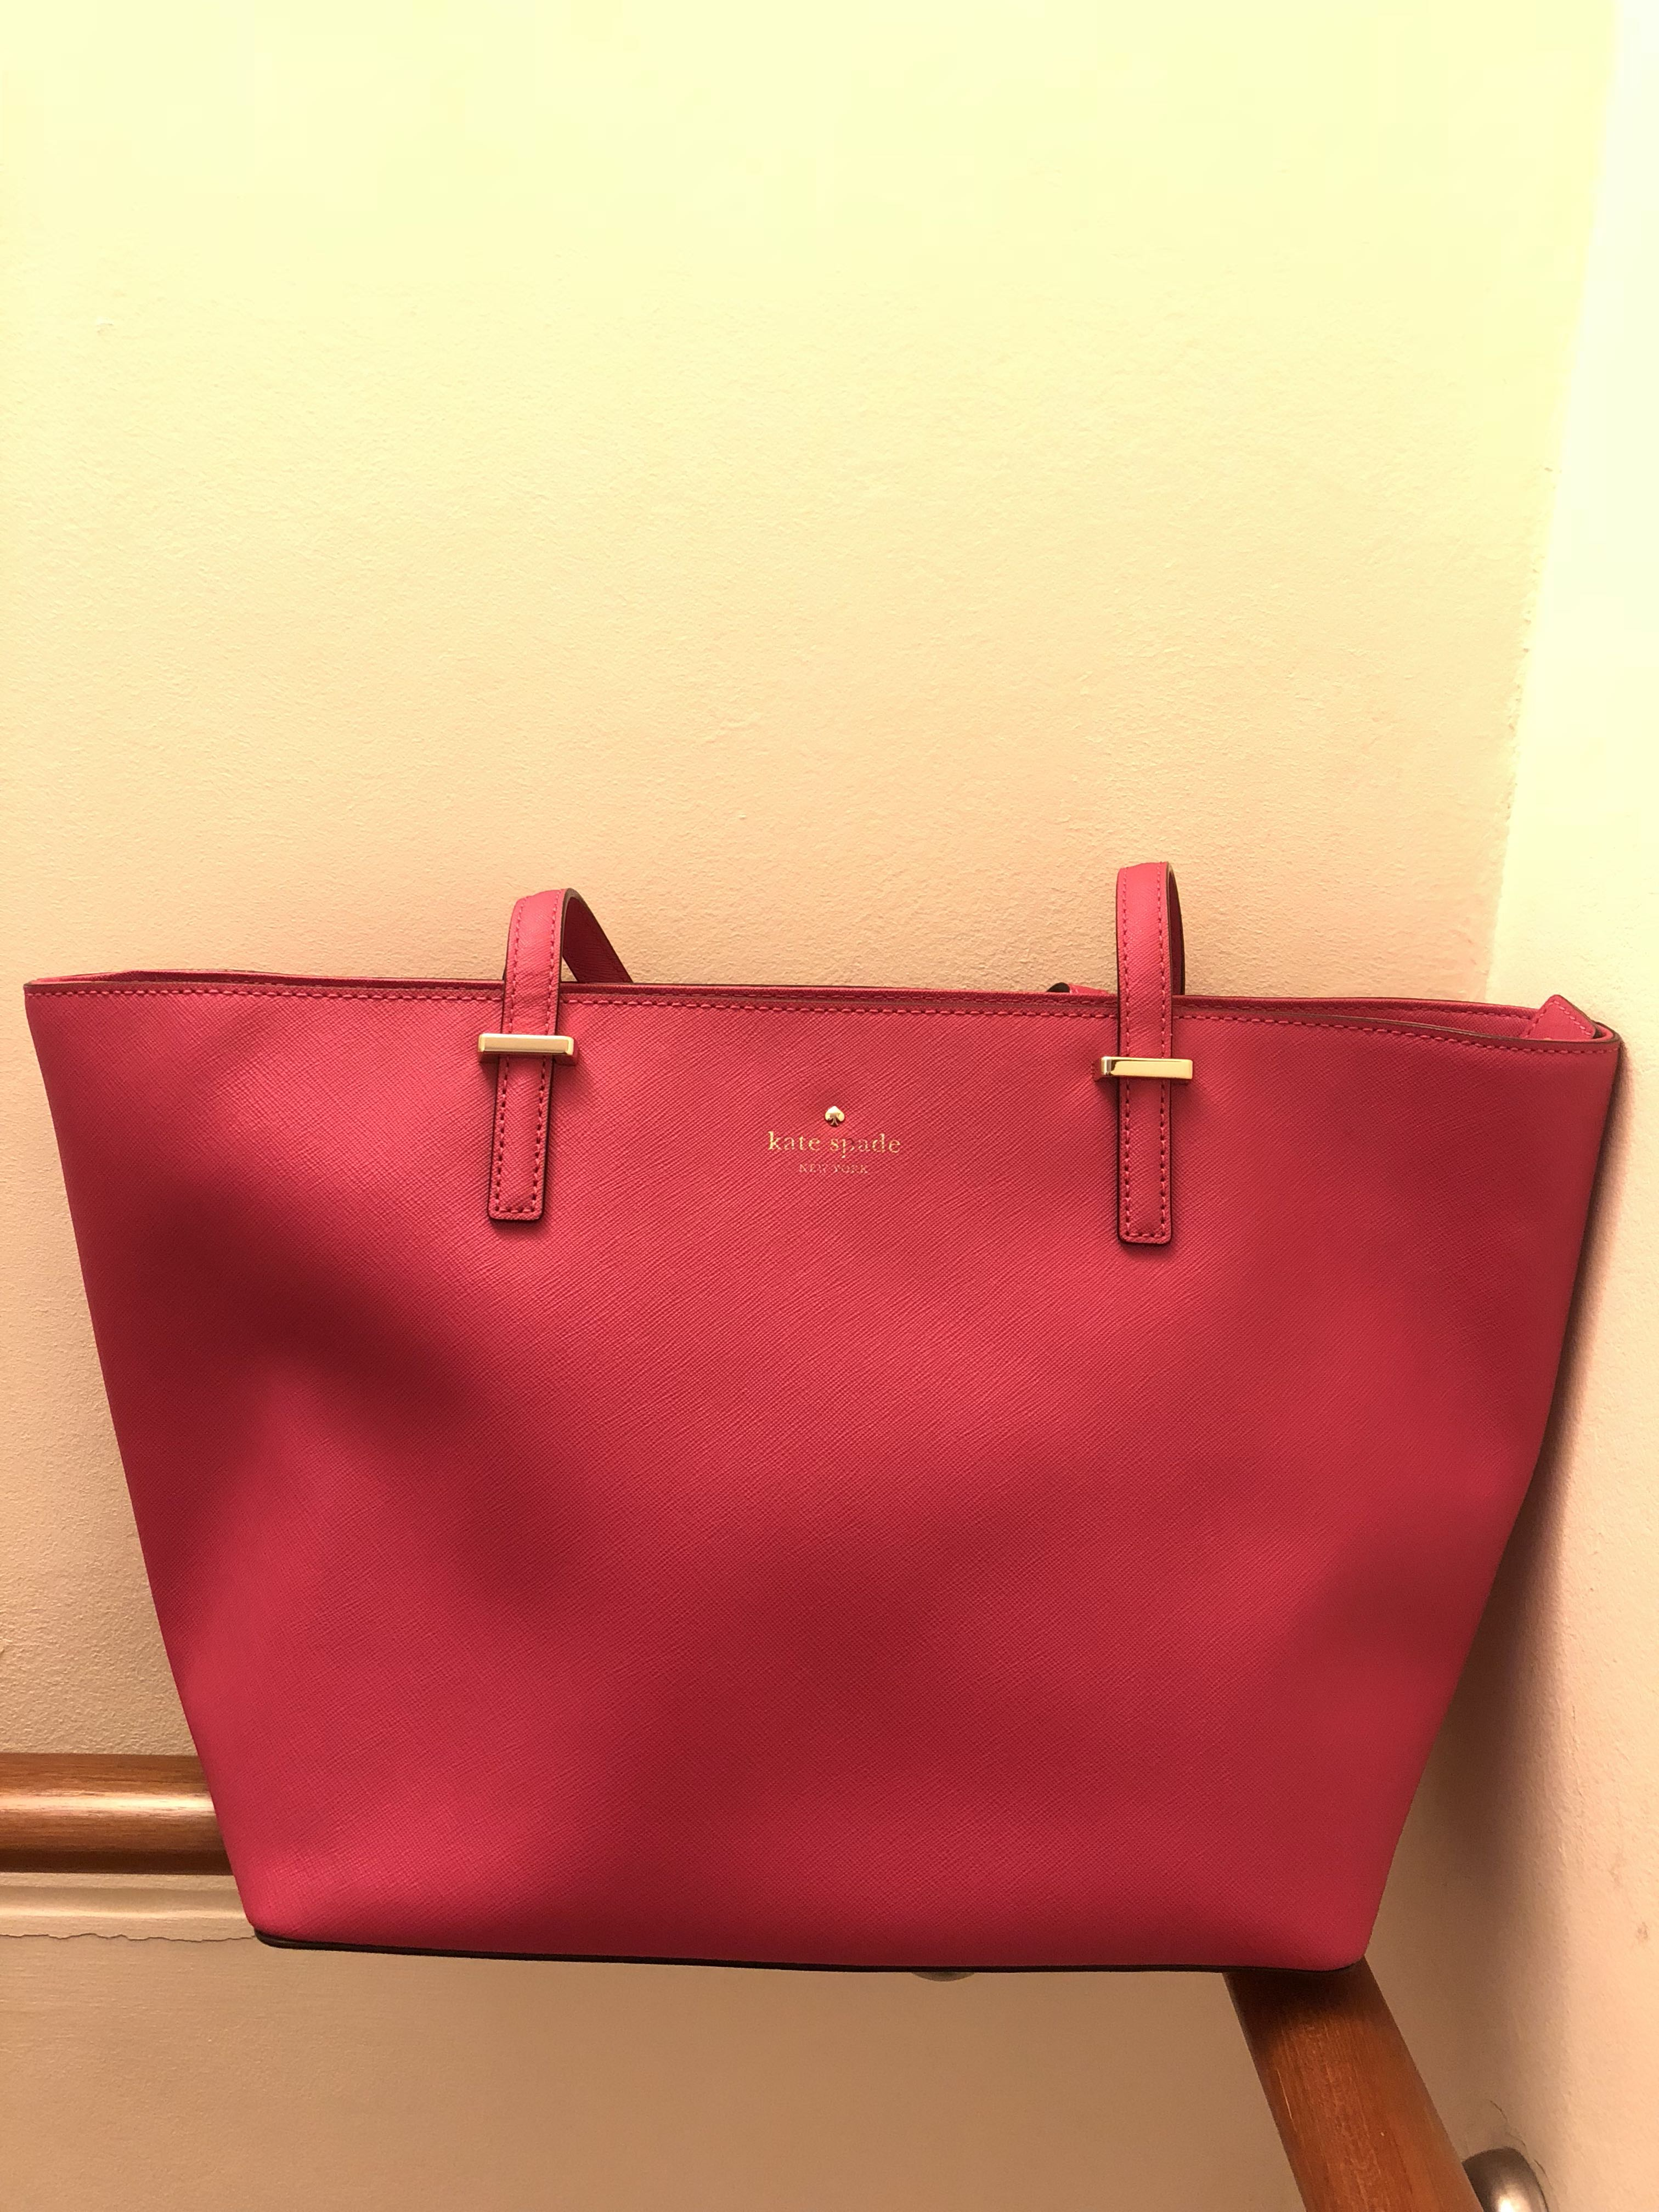 f2f251c43 authentic kate spade pink tote bag, Women's Fashion, Bags & Wallets,  Handbags on Carousell